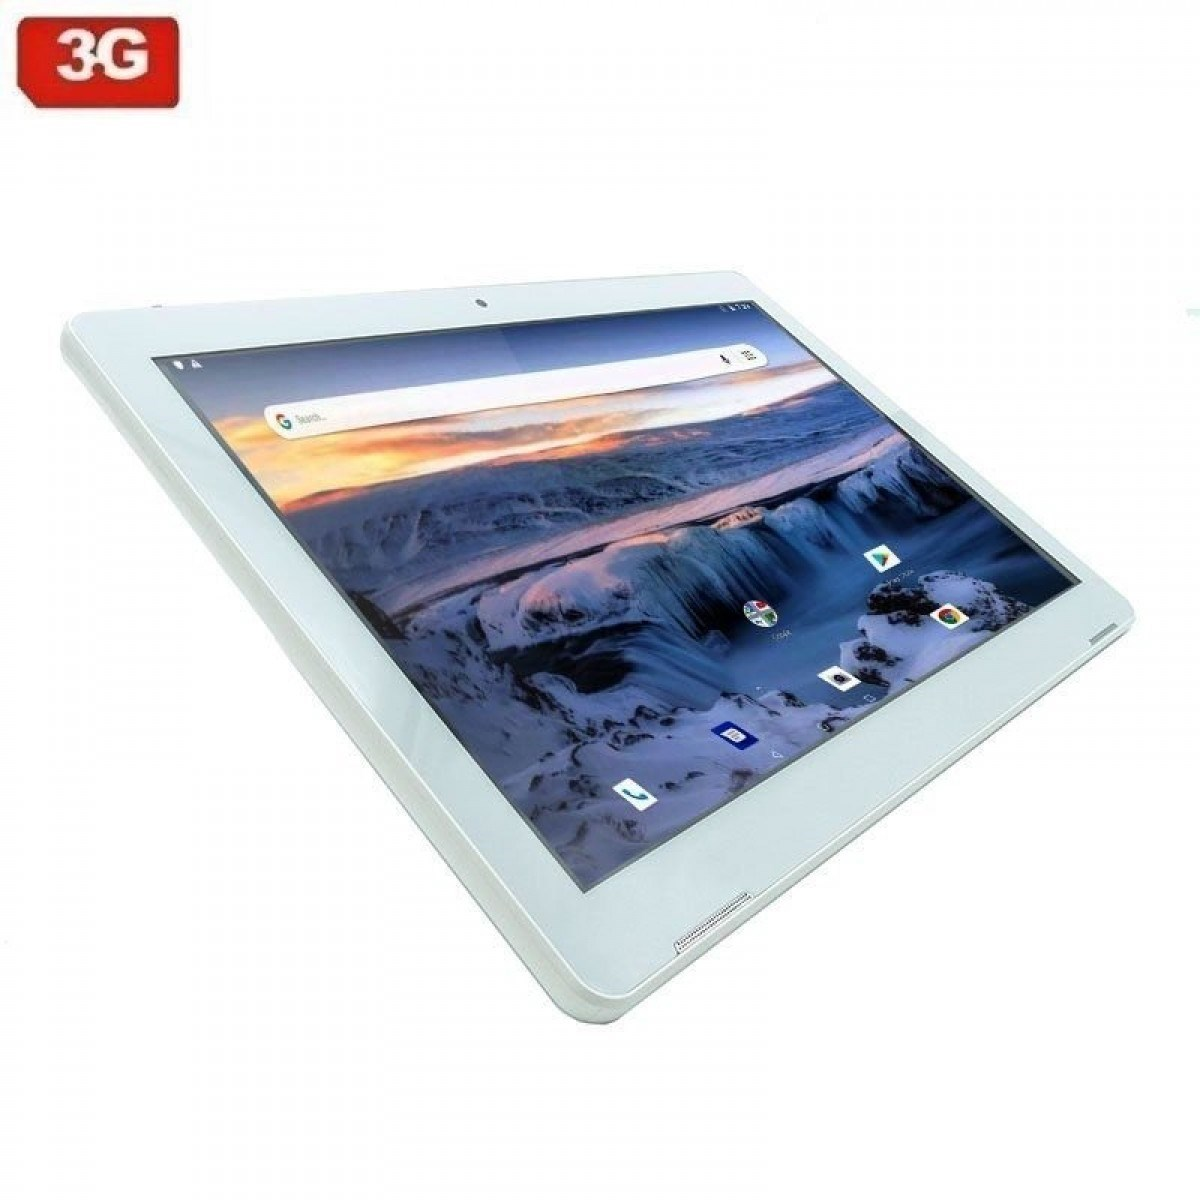 TABLET INNJOO F104 3G 10.1-1GB-16GB BLANCO